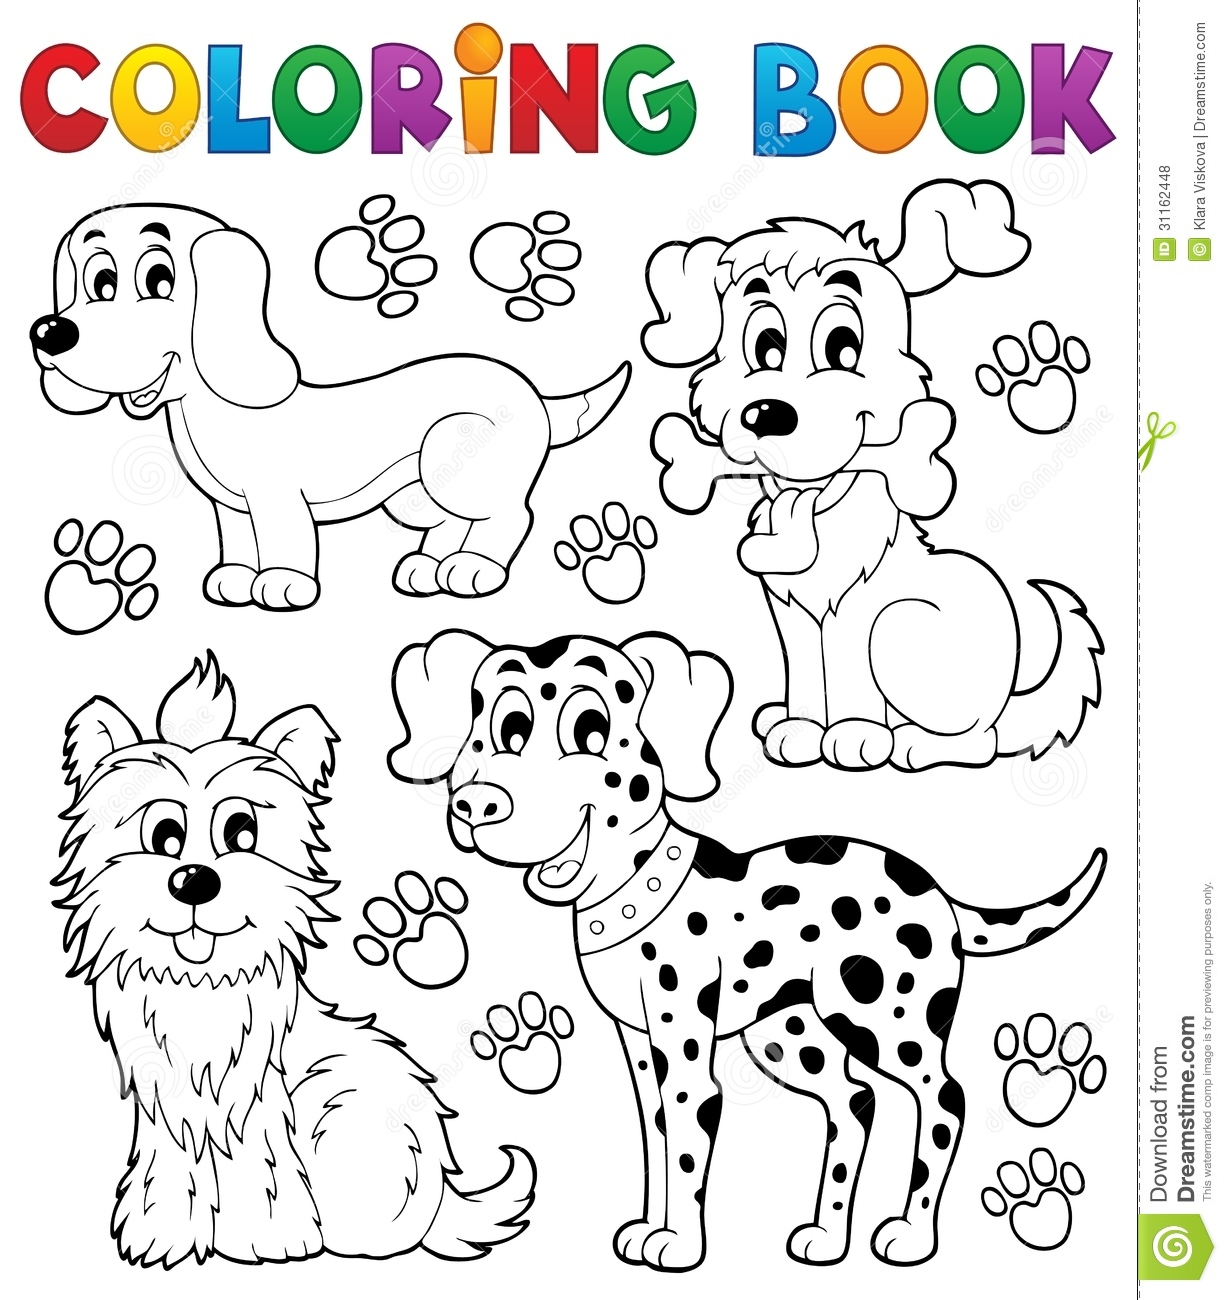 1227x1300 Free Coloring Book Books For Adults Online Where Can I Get By Mail